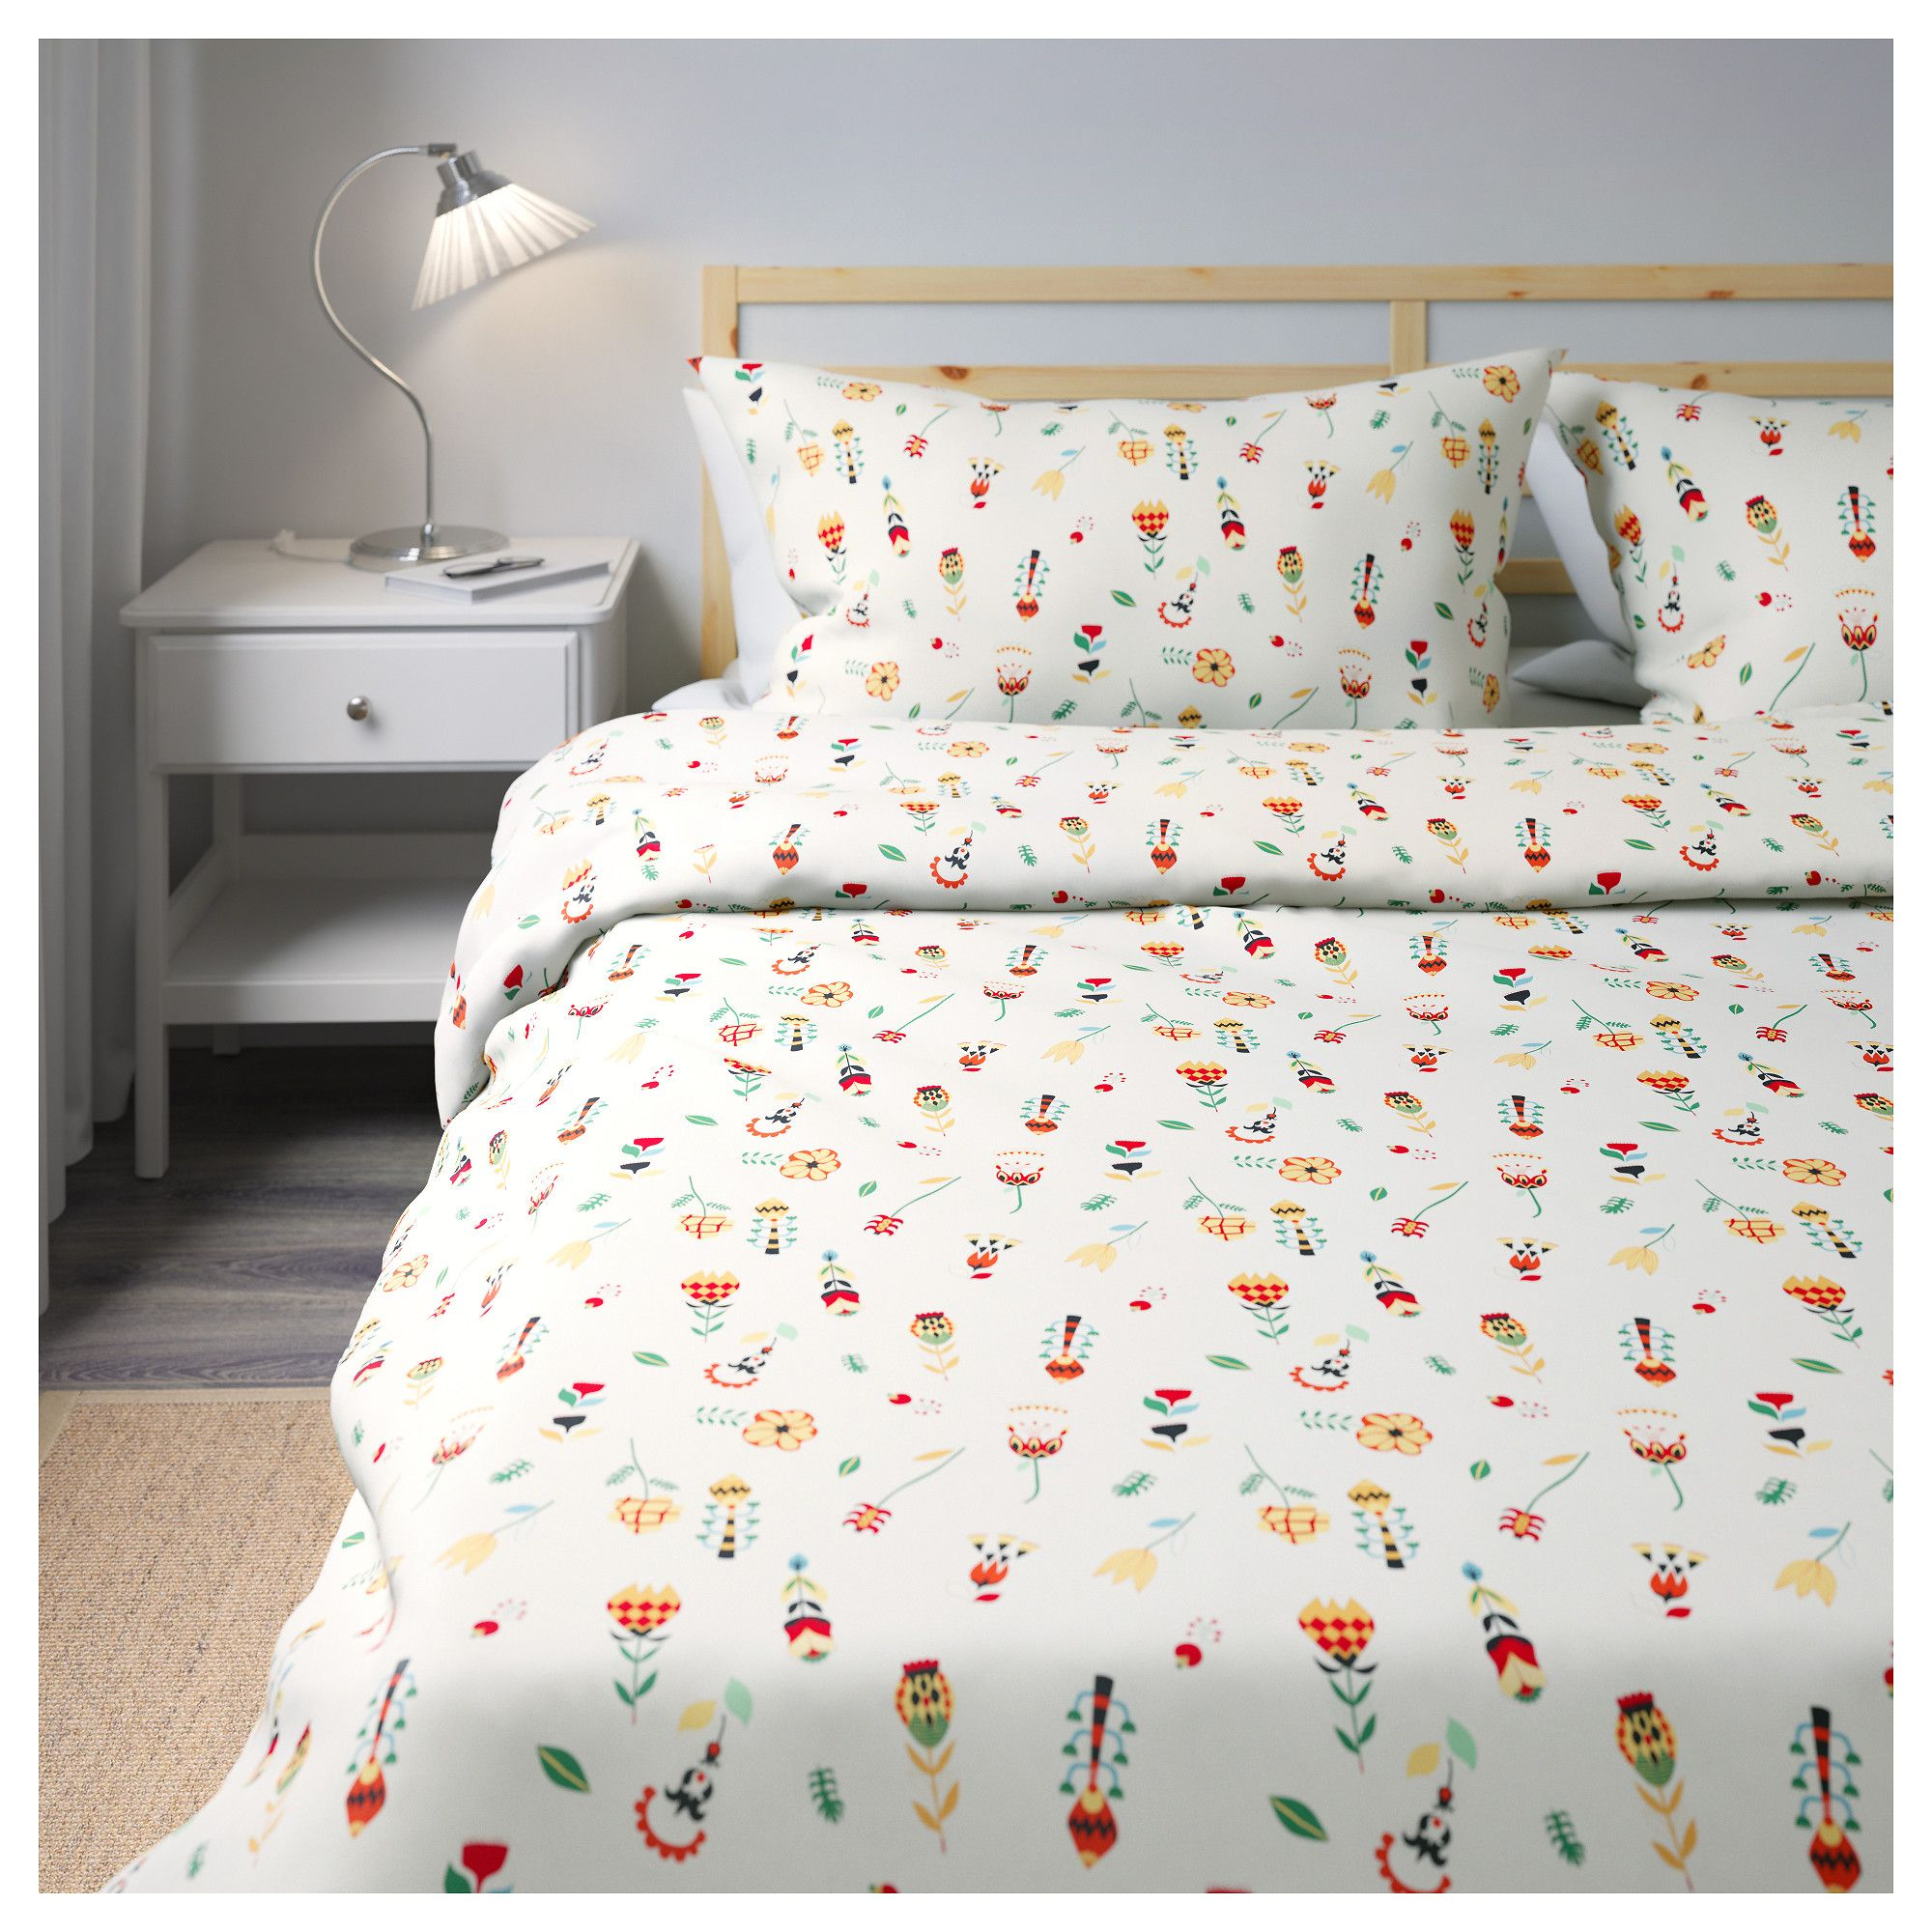 Furniture and Home Furnishings Ikea duvet cover, Bed